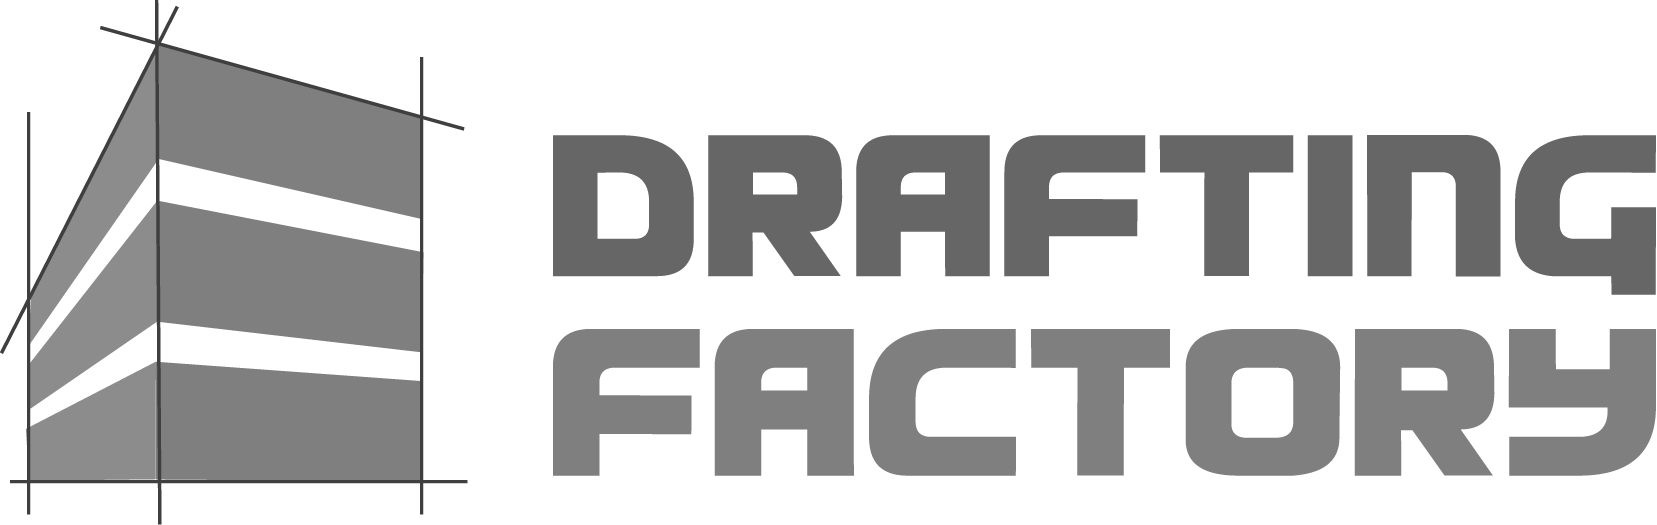 Drafting Factory